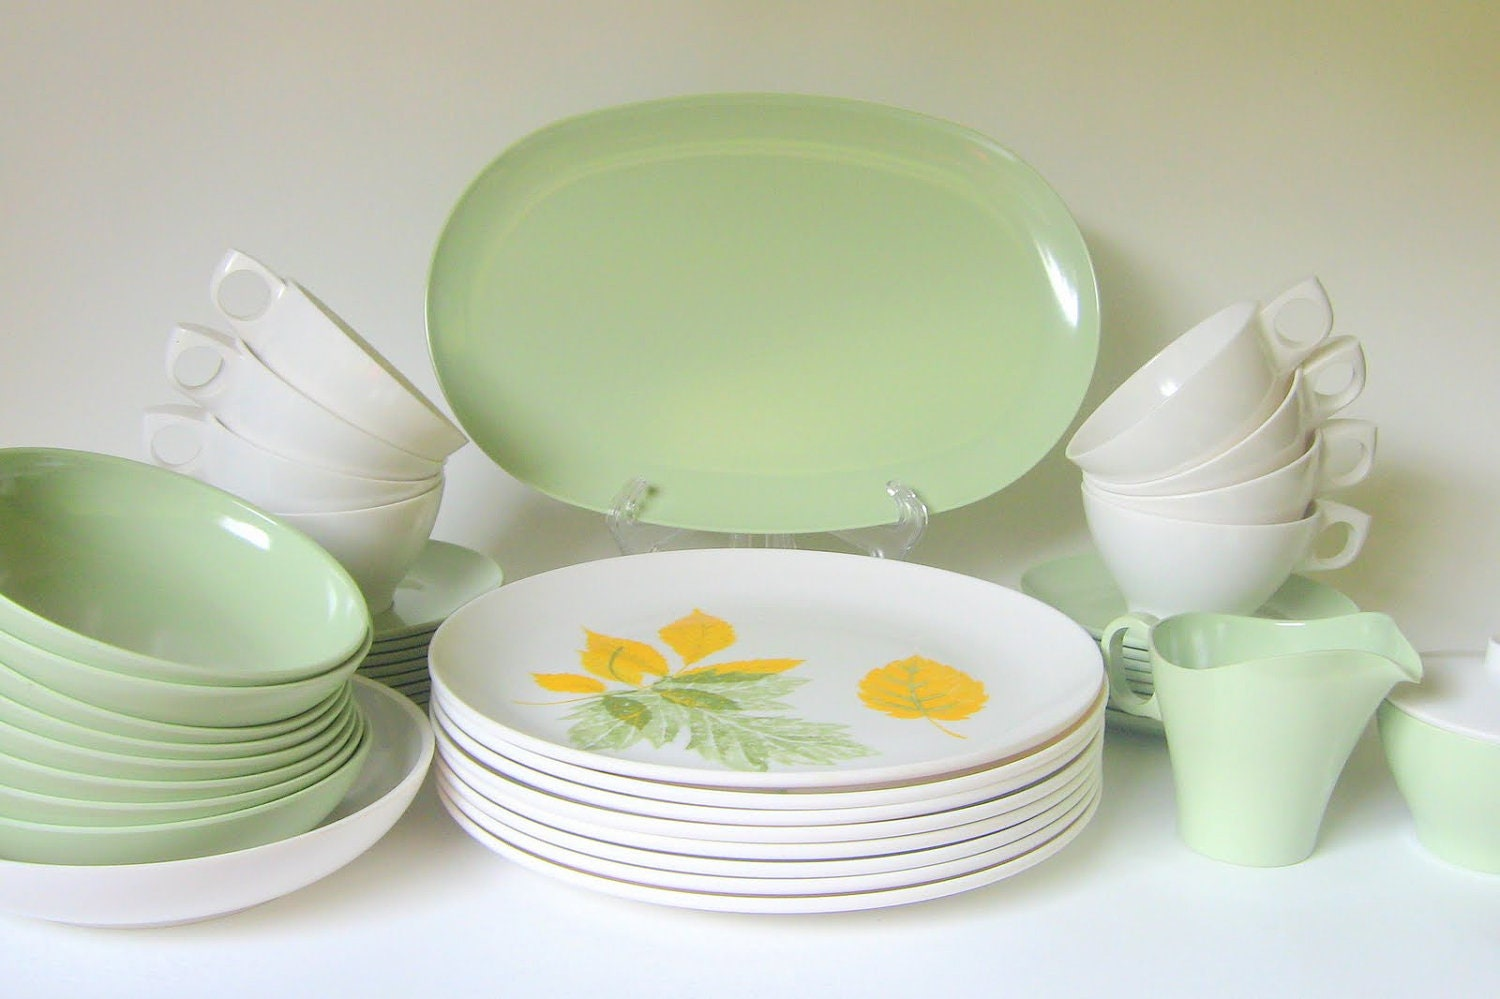 Melamine Dinnerware Deals On 1001 Blocks & Better Homes And Garden Dinnerware Sets - Castrophotos